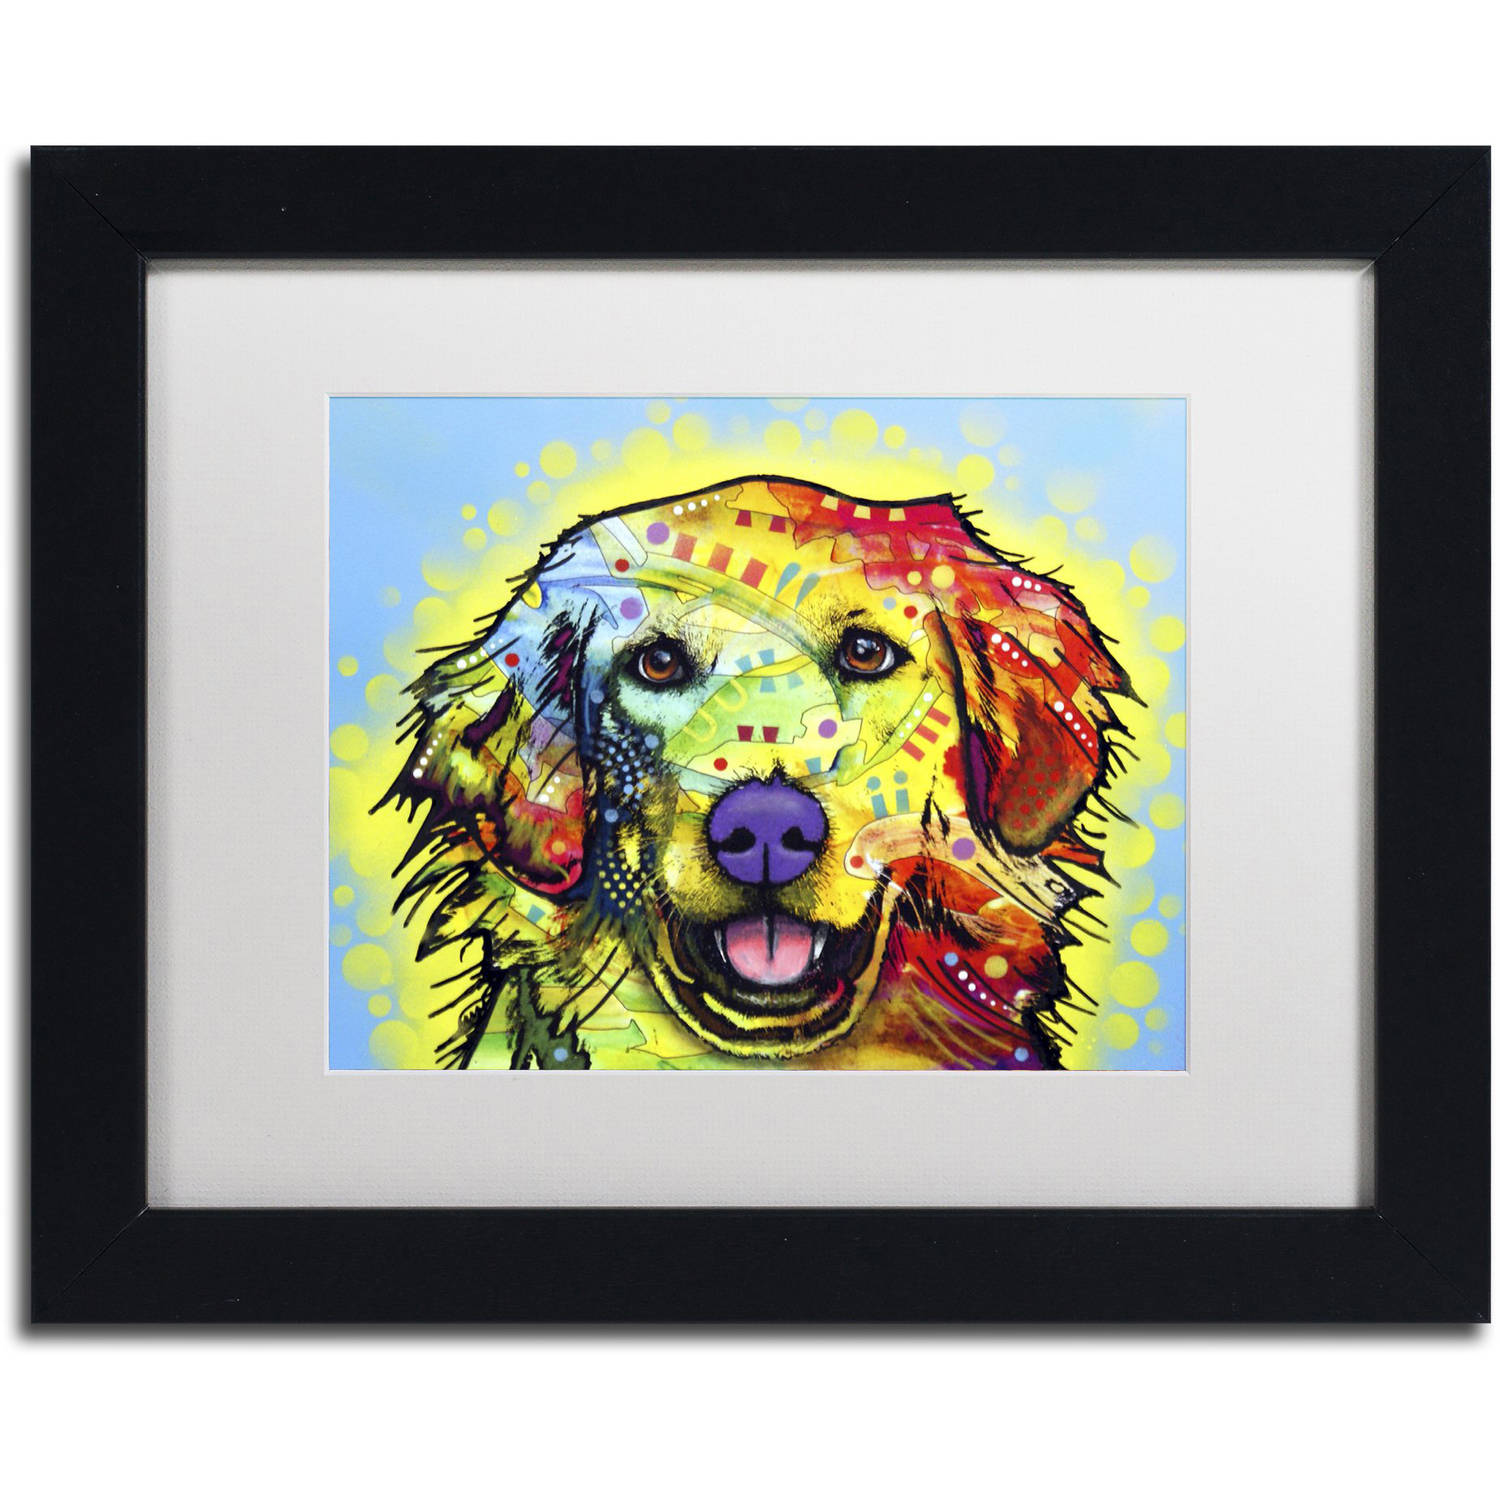 "Trademark Fine Art ""Golden Retriever"" Canvas Art by Dean Russo, White Matte, Black Frame"